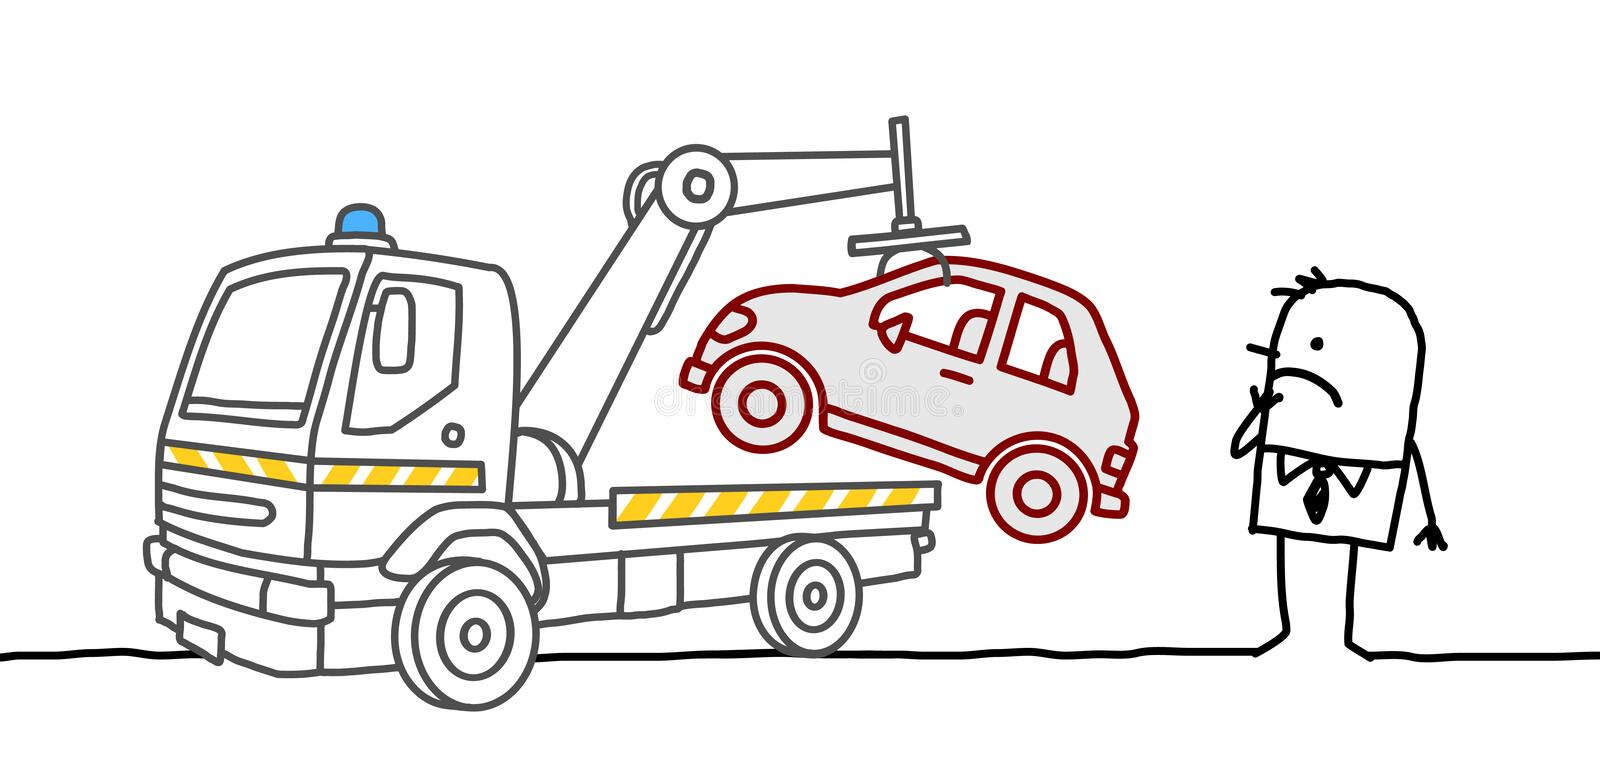 Download Car Impounded Stock Image - Image: 31945321